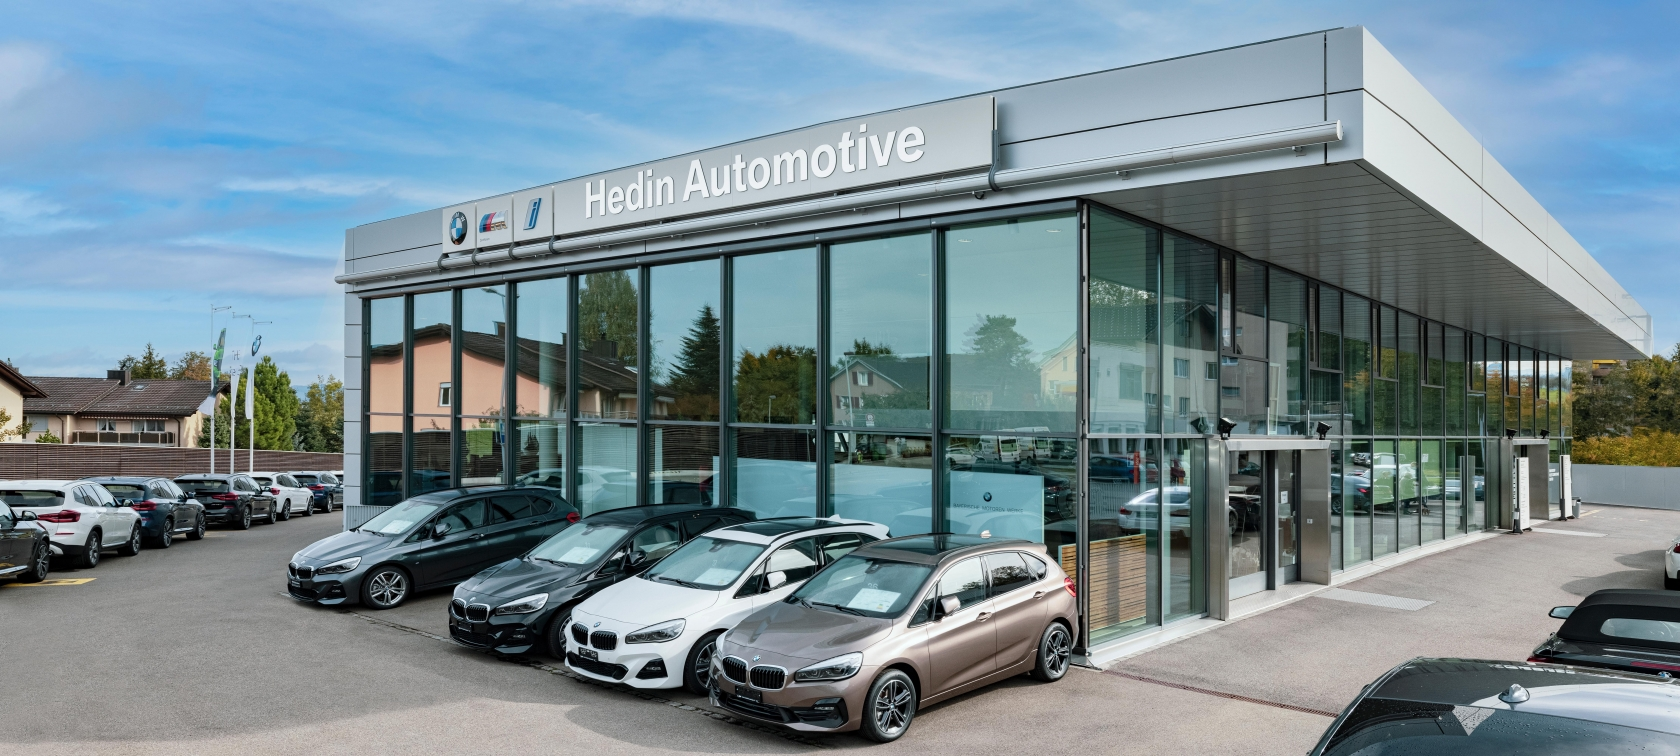 Hedin Automotive